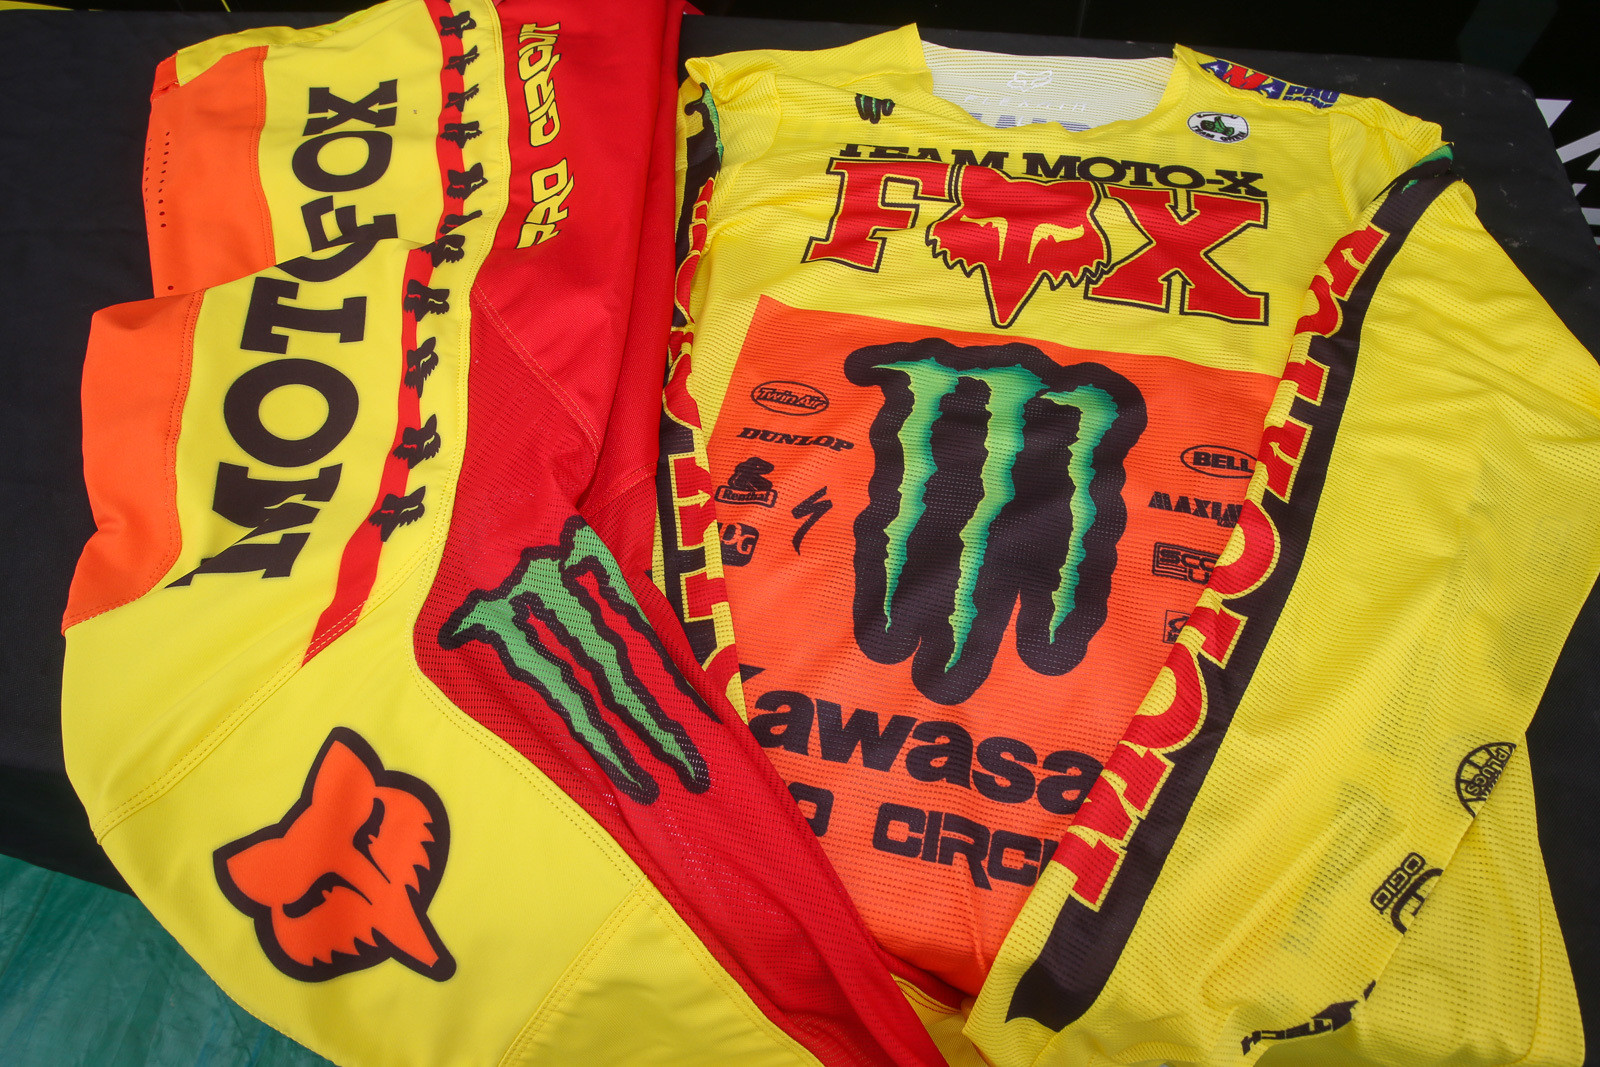 Fox did up some very trick team-only retro gear for the Monster Energy Pro Circuit Kawasaki guys.